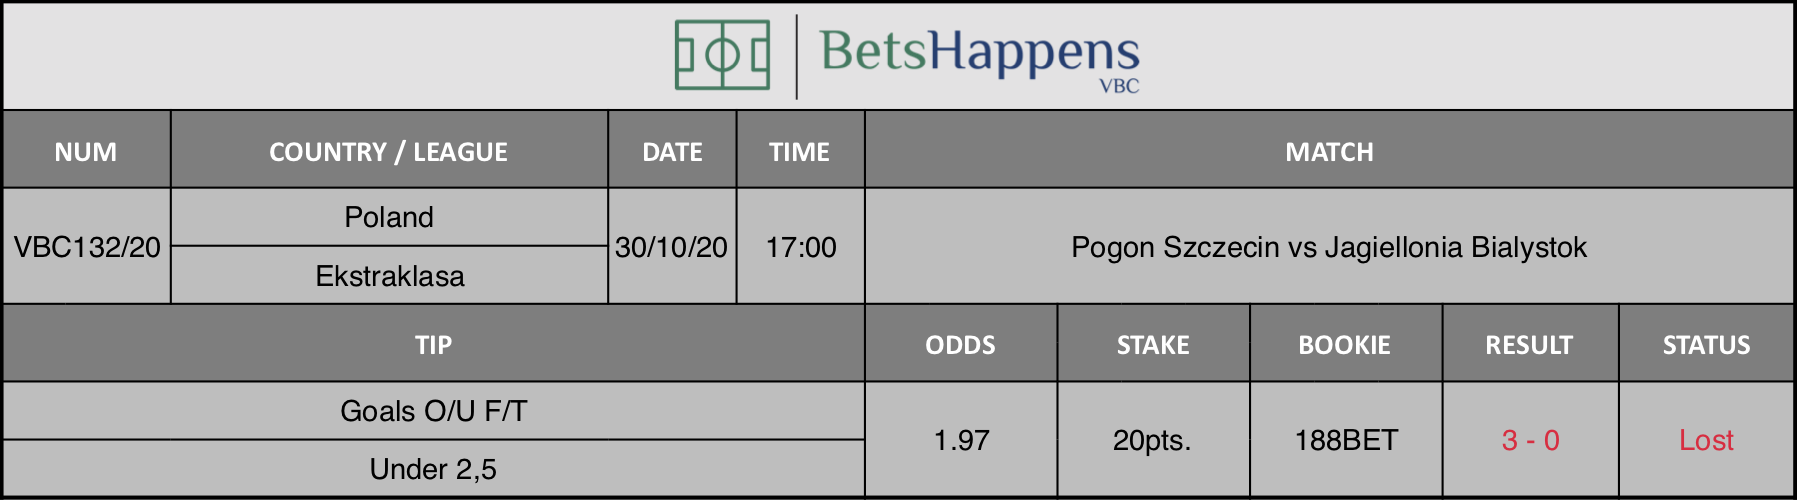 Results of our tip for the Pogon Szczecin vs Jagiellonia Bialystok  match where Goals O/U F/T Under 2,5 is recommended.